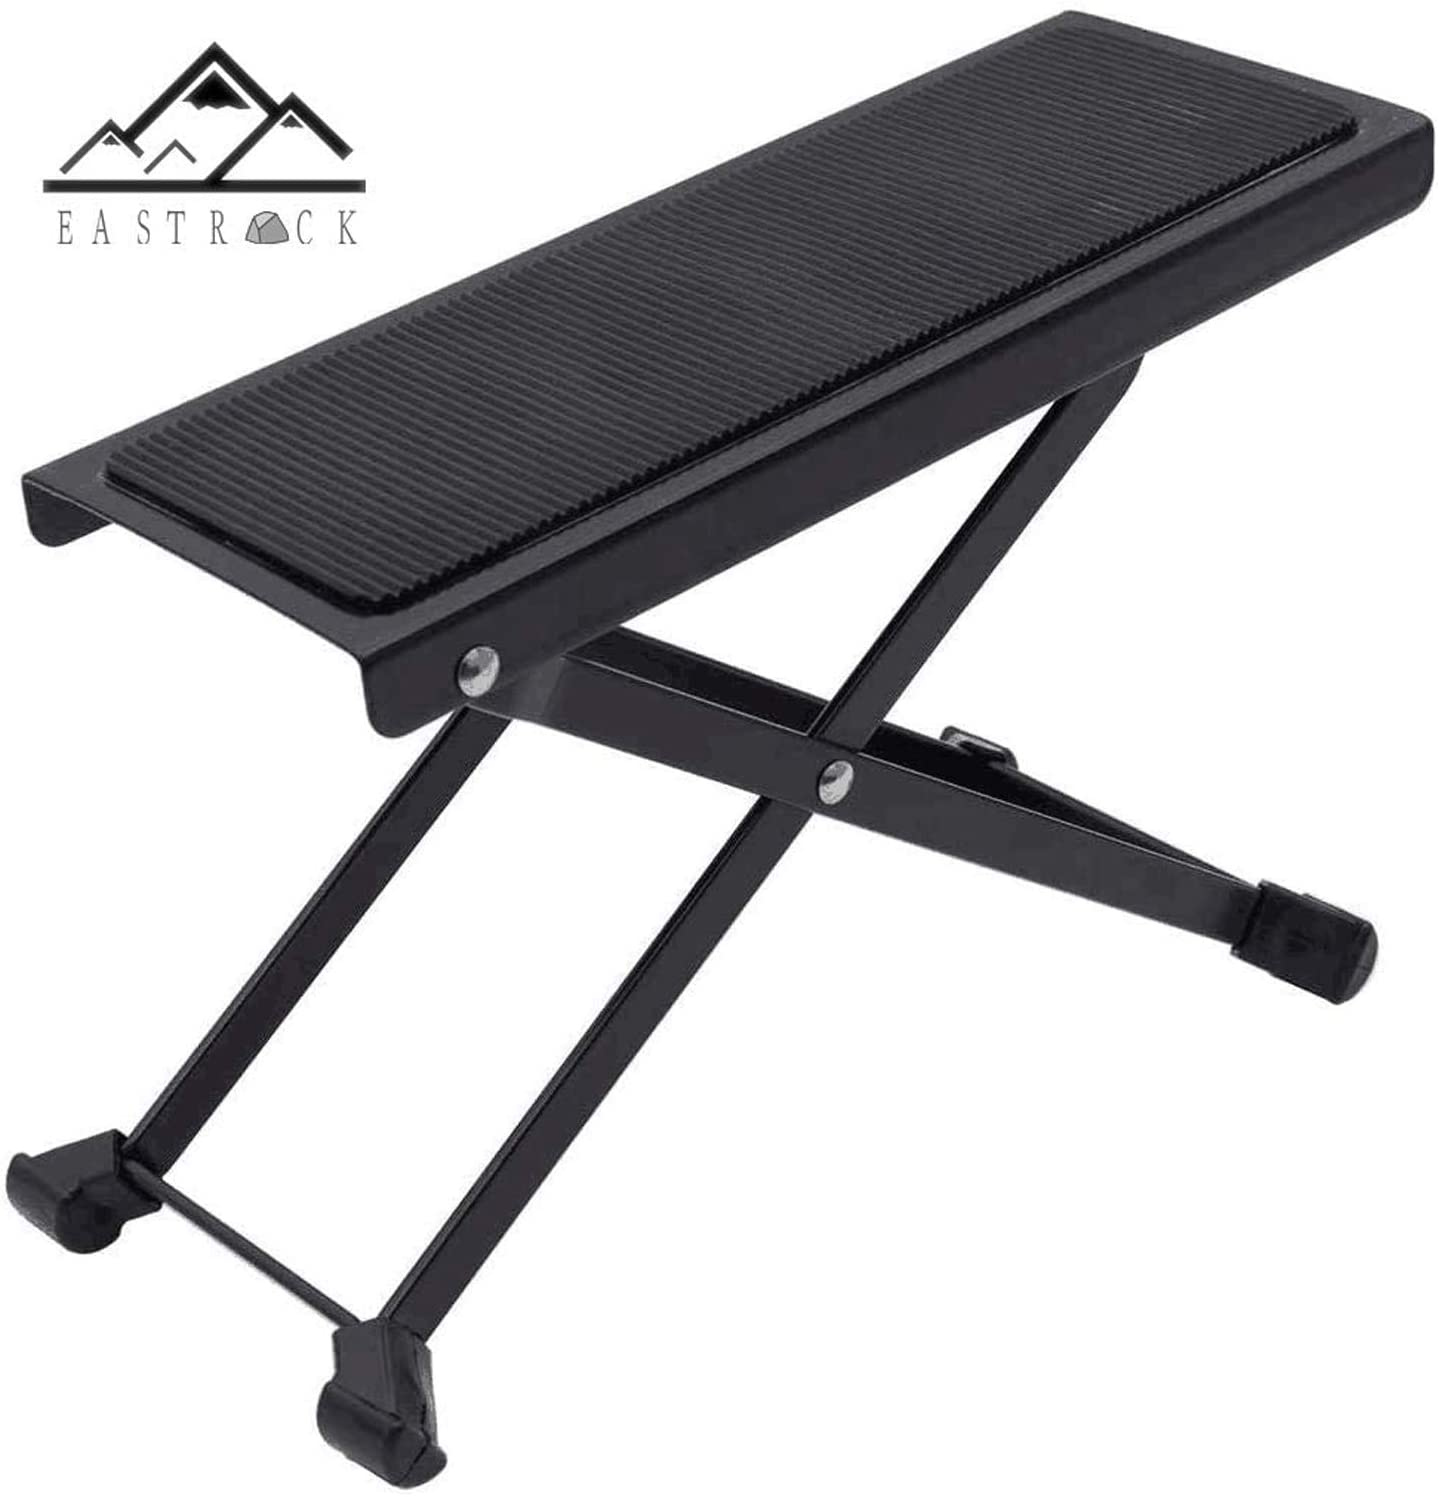 EastRock Adjustable Height Guitar Footstool Angle Non-slip Rubber Pad Excellent Stability Guitar Accessories